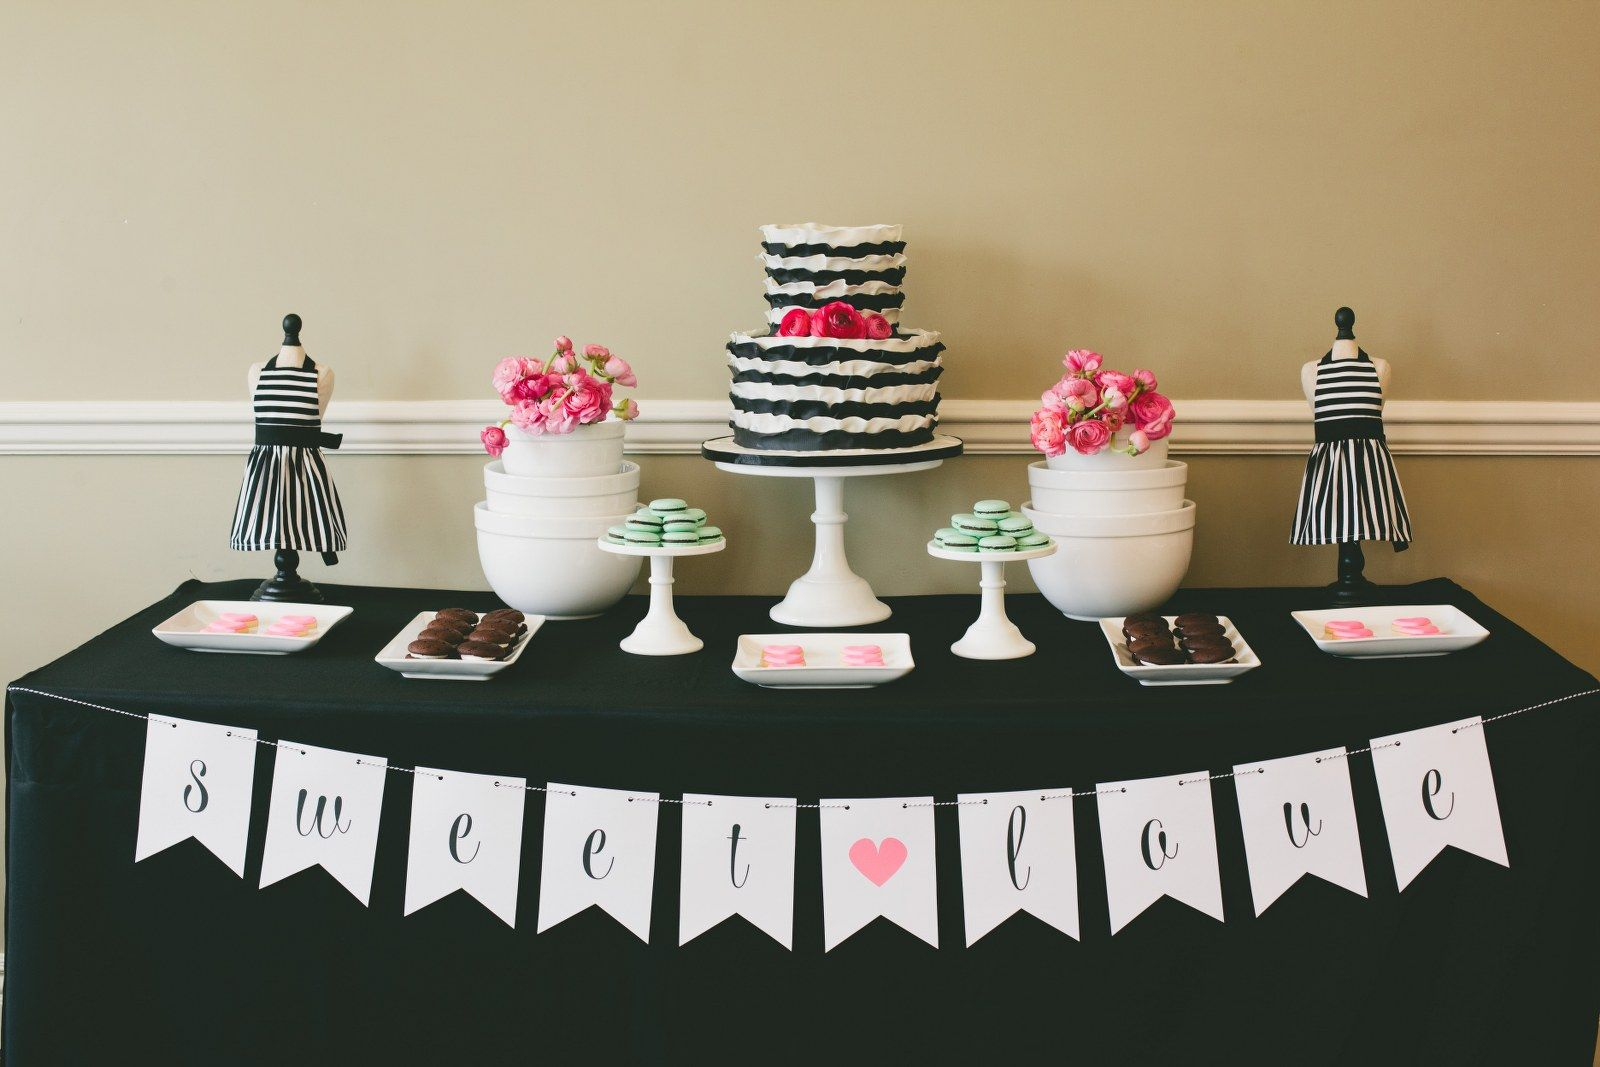 Baking themed bridal shower by paige simple 6 event planning baking themed bridal shower by paige simple 6 altavistaventures Gallery